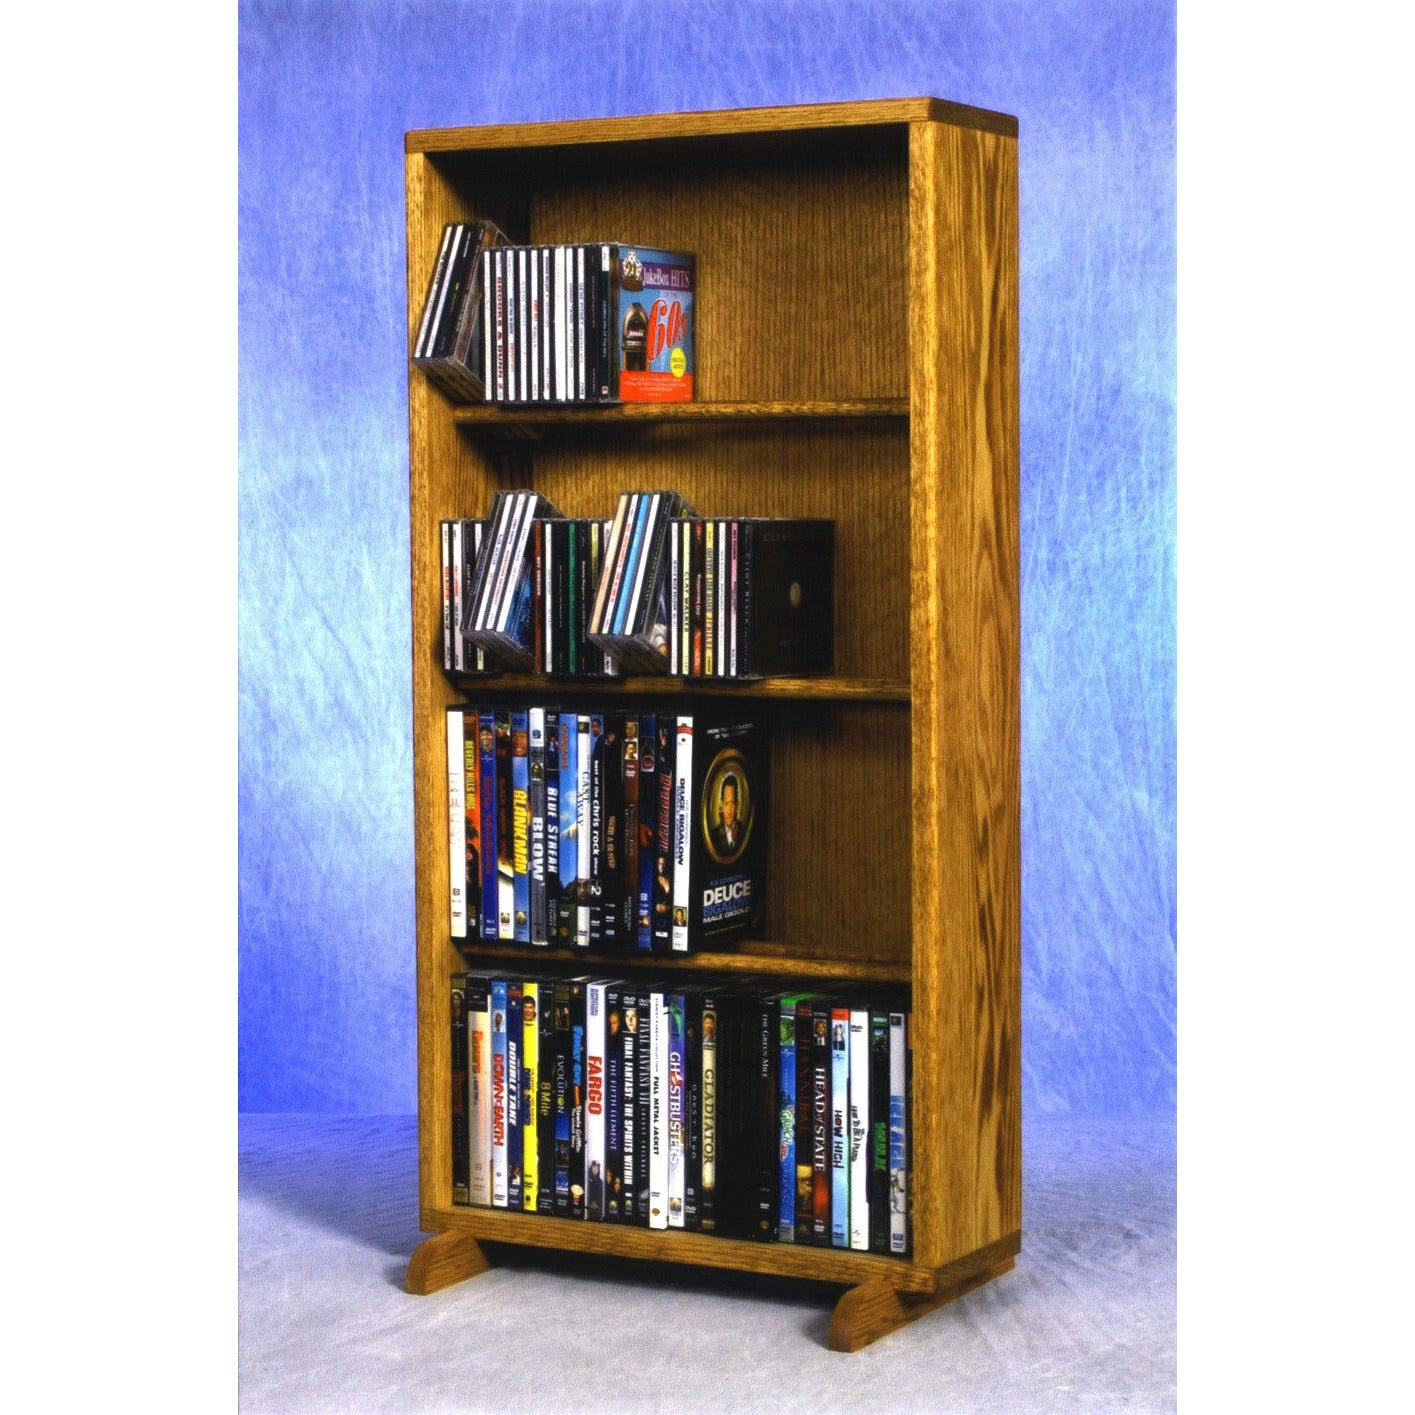 Model 415-18 CD/DVD/VHS Combination Cabinet - honey oak